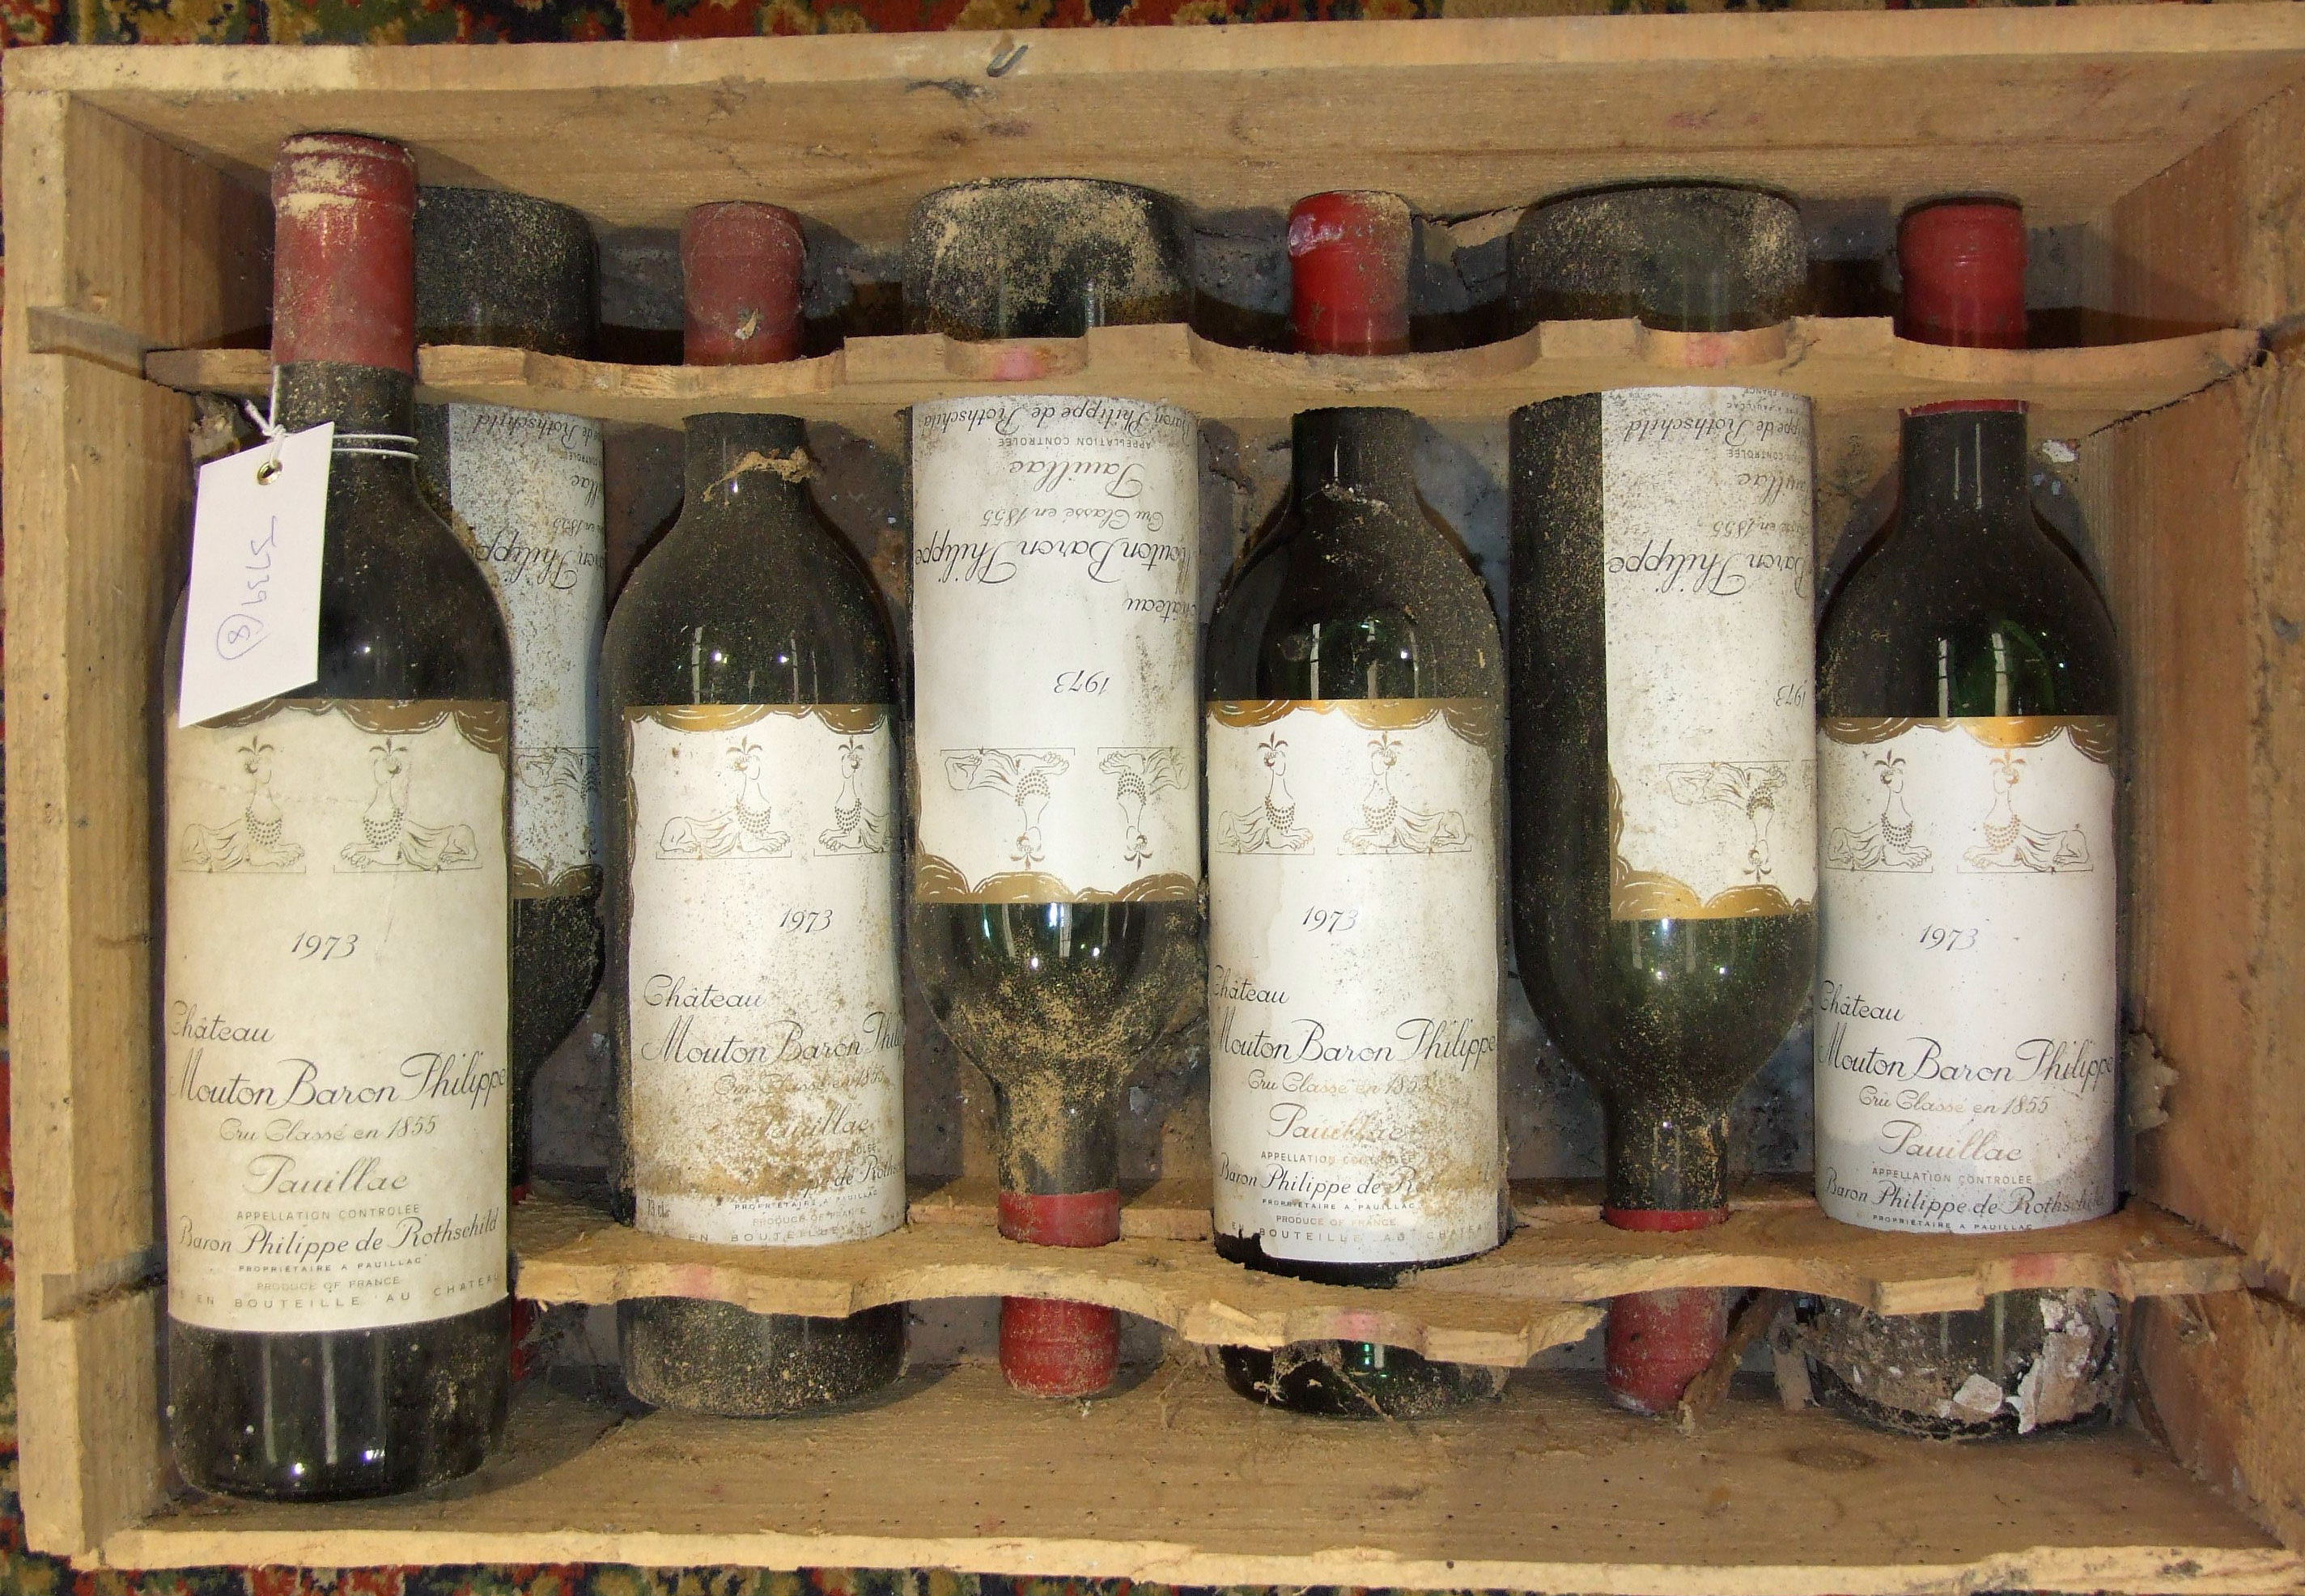 Lot 8 - France, Chateau Mouton Baron Rothschild 1973, low shoulder, good labels, OWC (damaged), seven